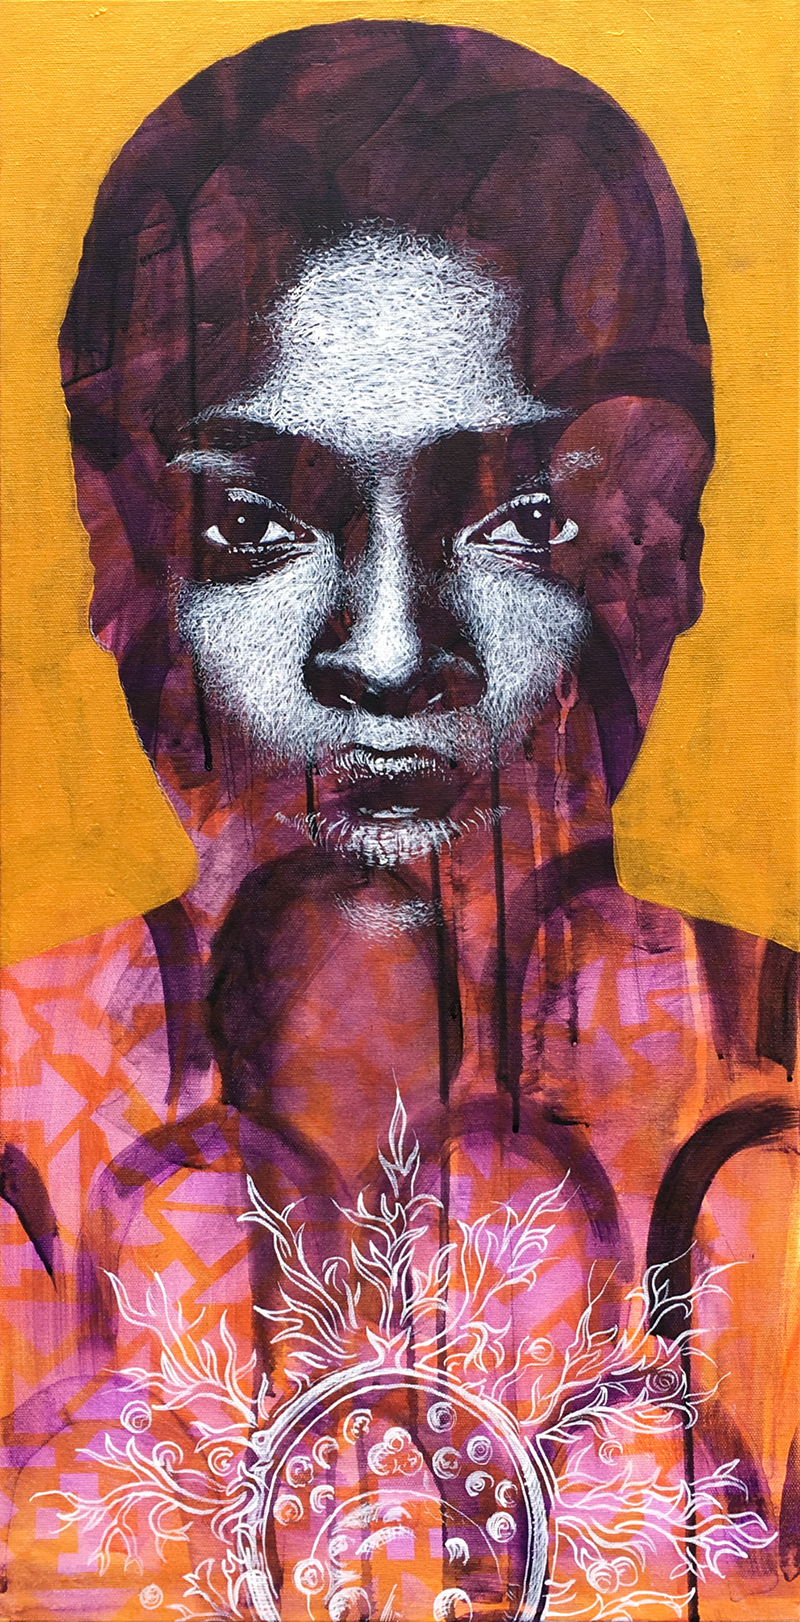 """Capsule"" acrylic & spray painting on canvas 40x80cm / may 2018"